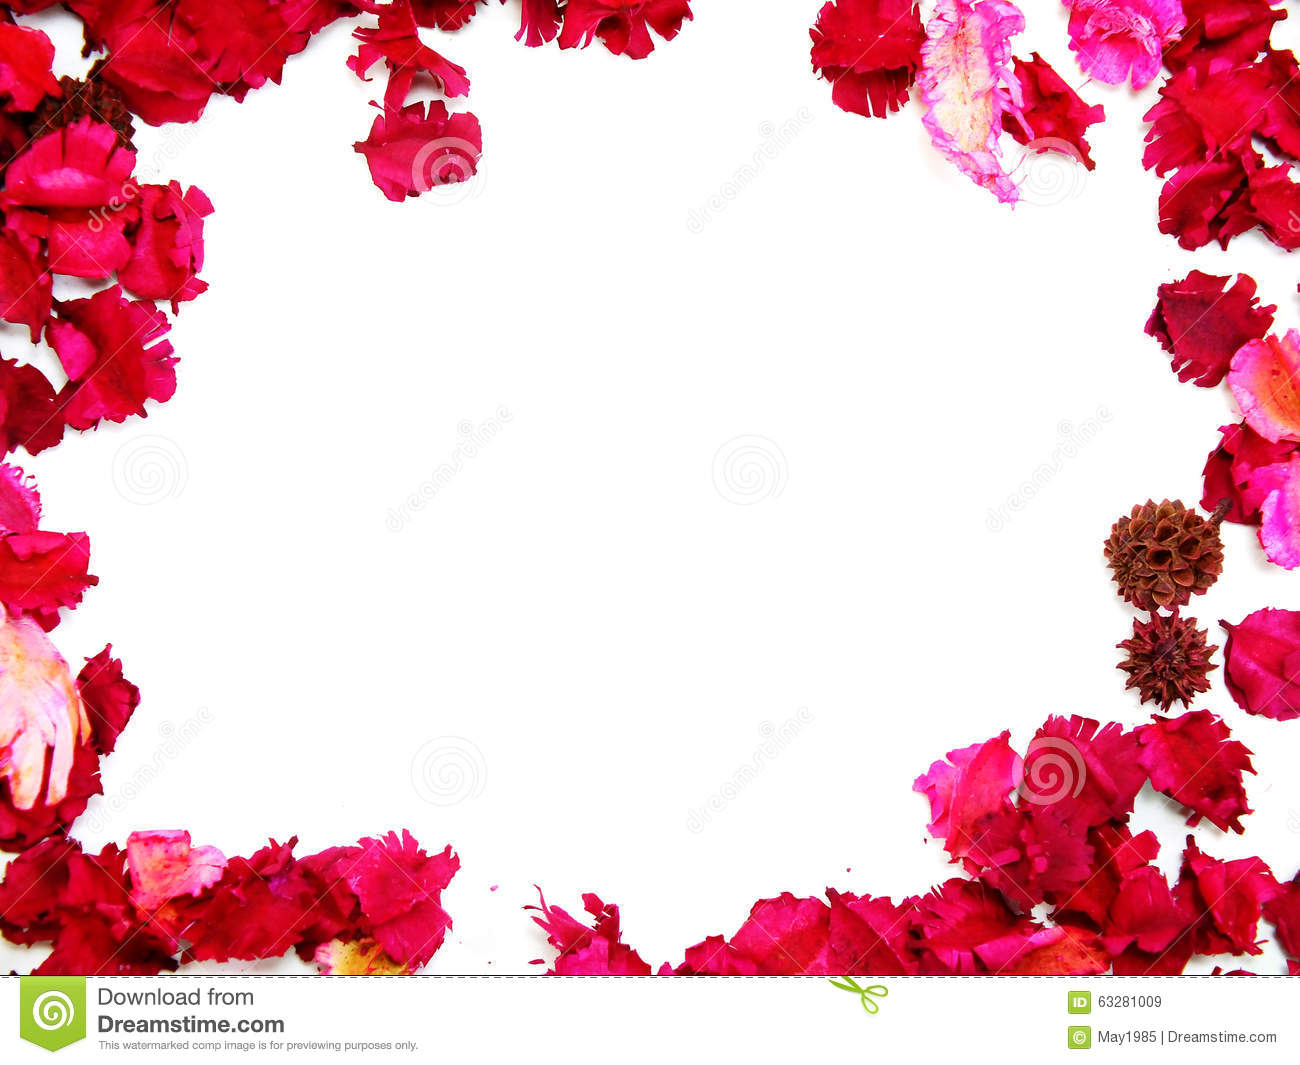 Pink flowers border frame stock image image of natural 63281009 pink flowers border frame mightylinksfo Choice Image